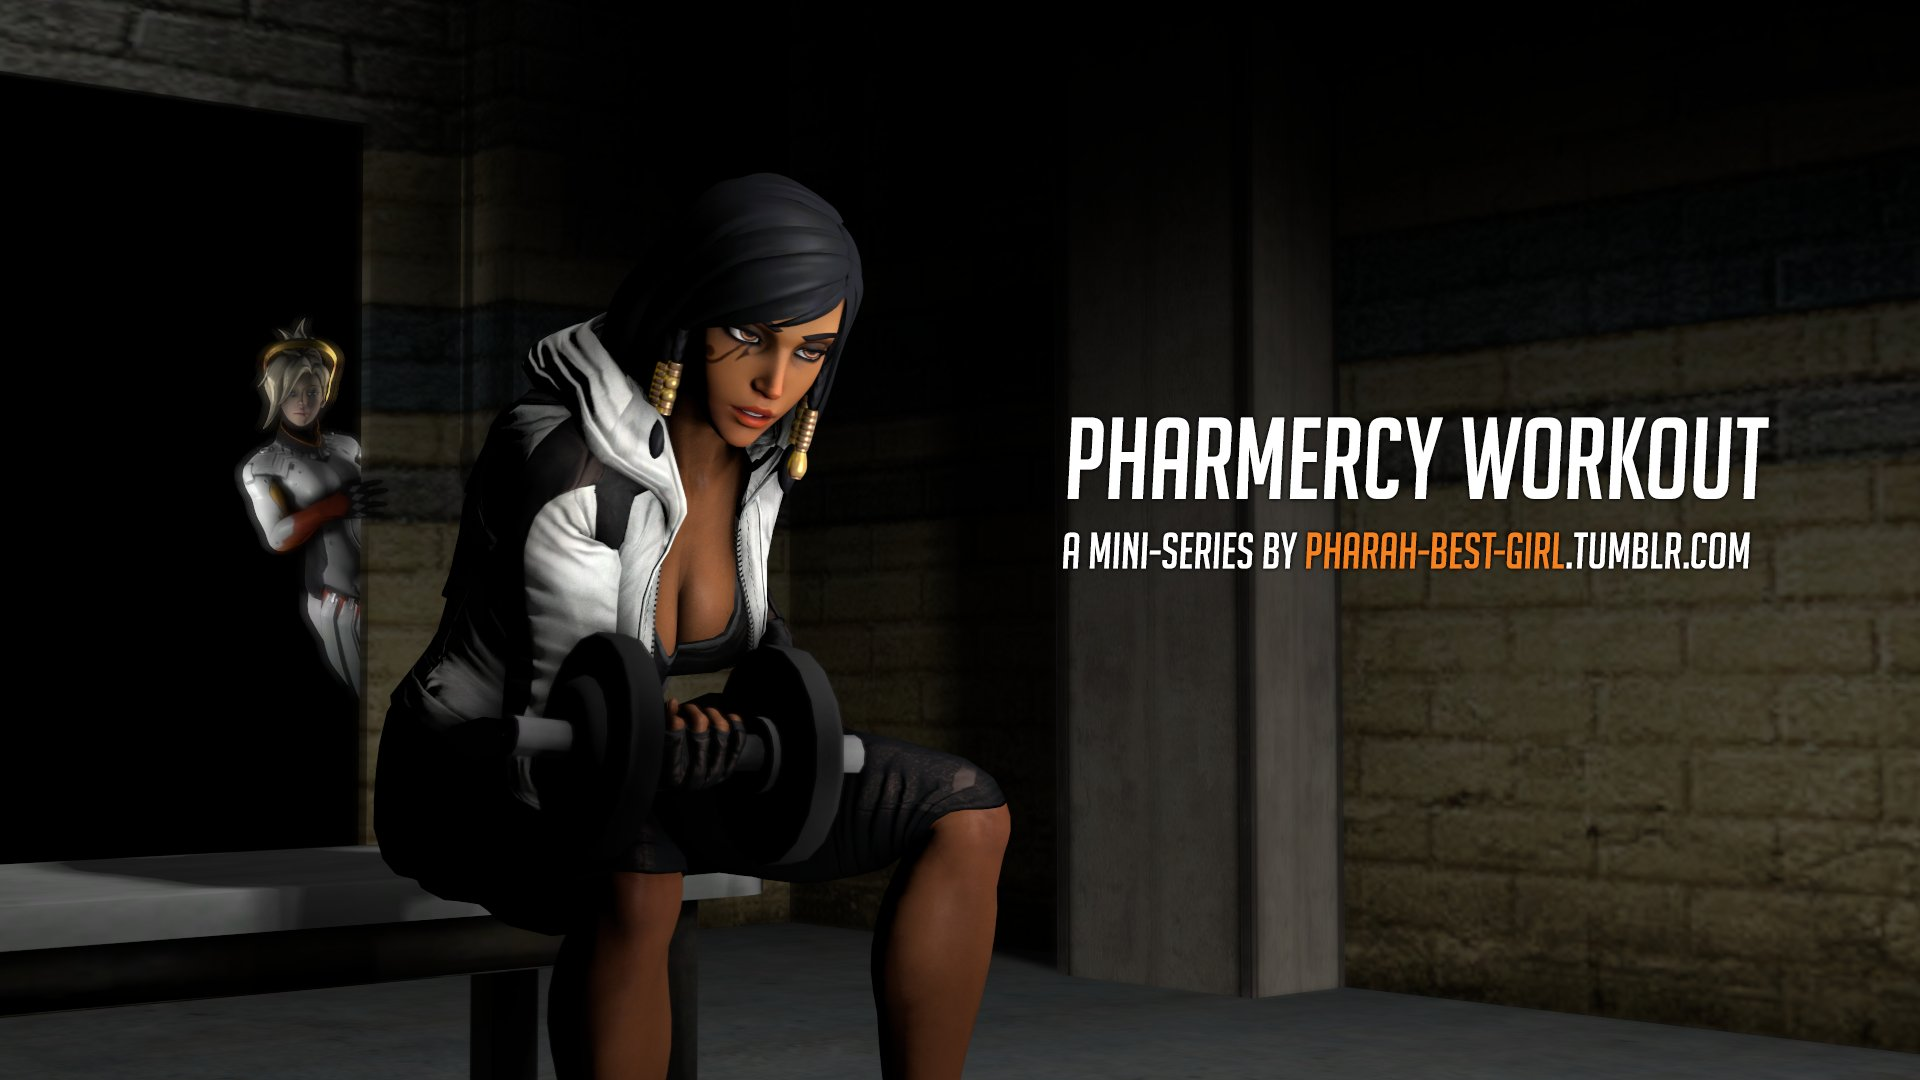 Pharah-best-girl – Pharmercy Workout - 23 Pages